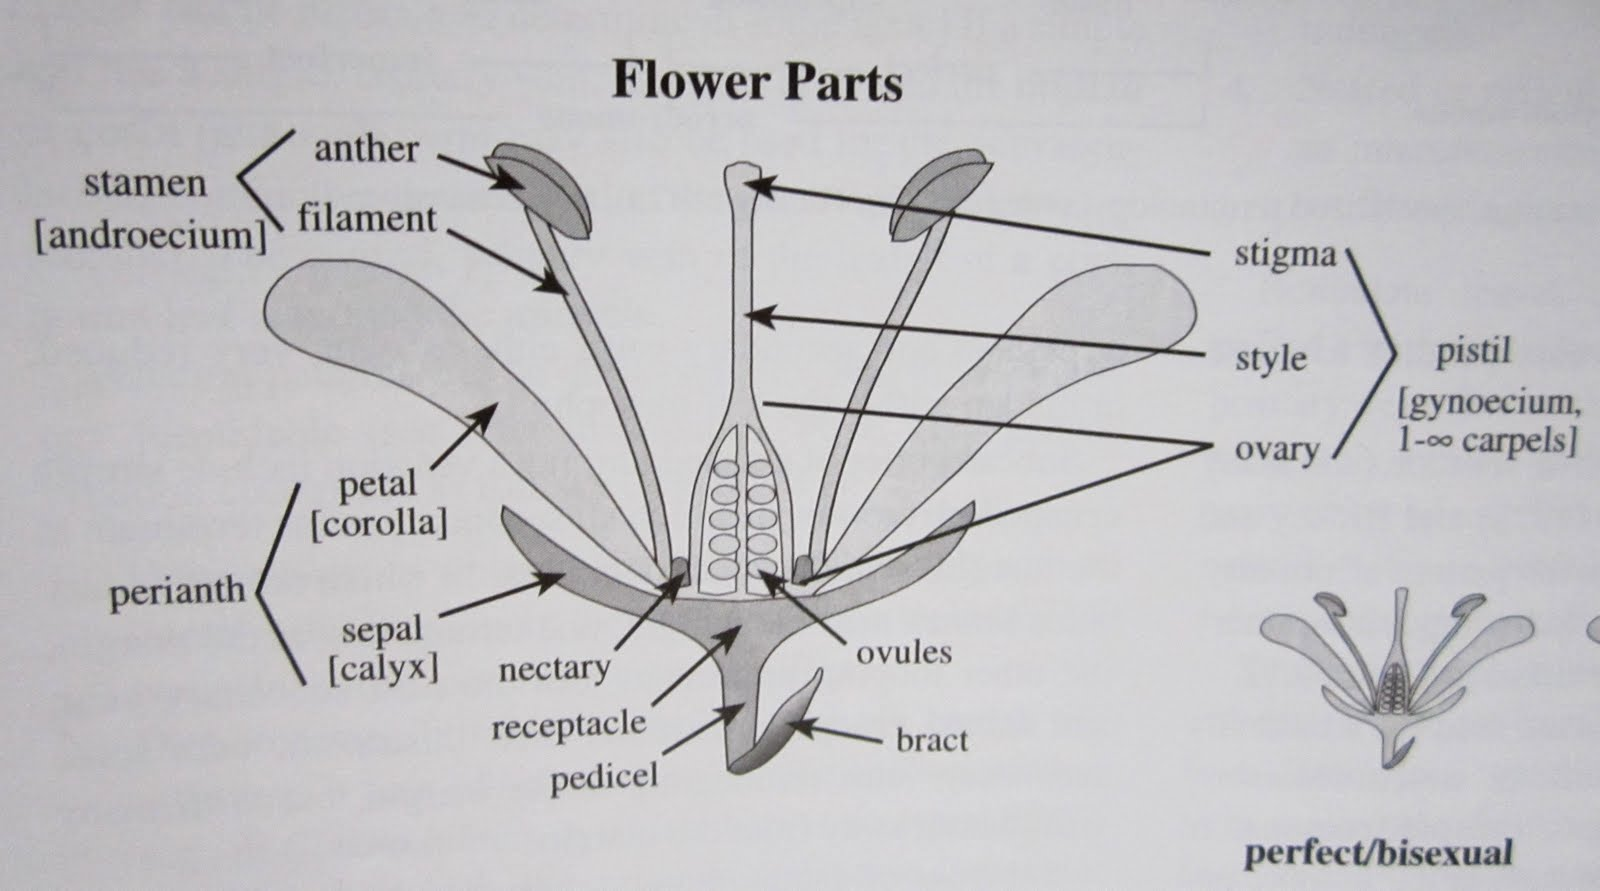 labelled diagram of pride barbados flower typical ansul system wiring inky leaves january 2012